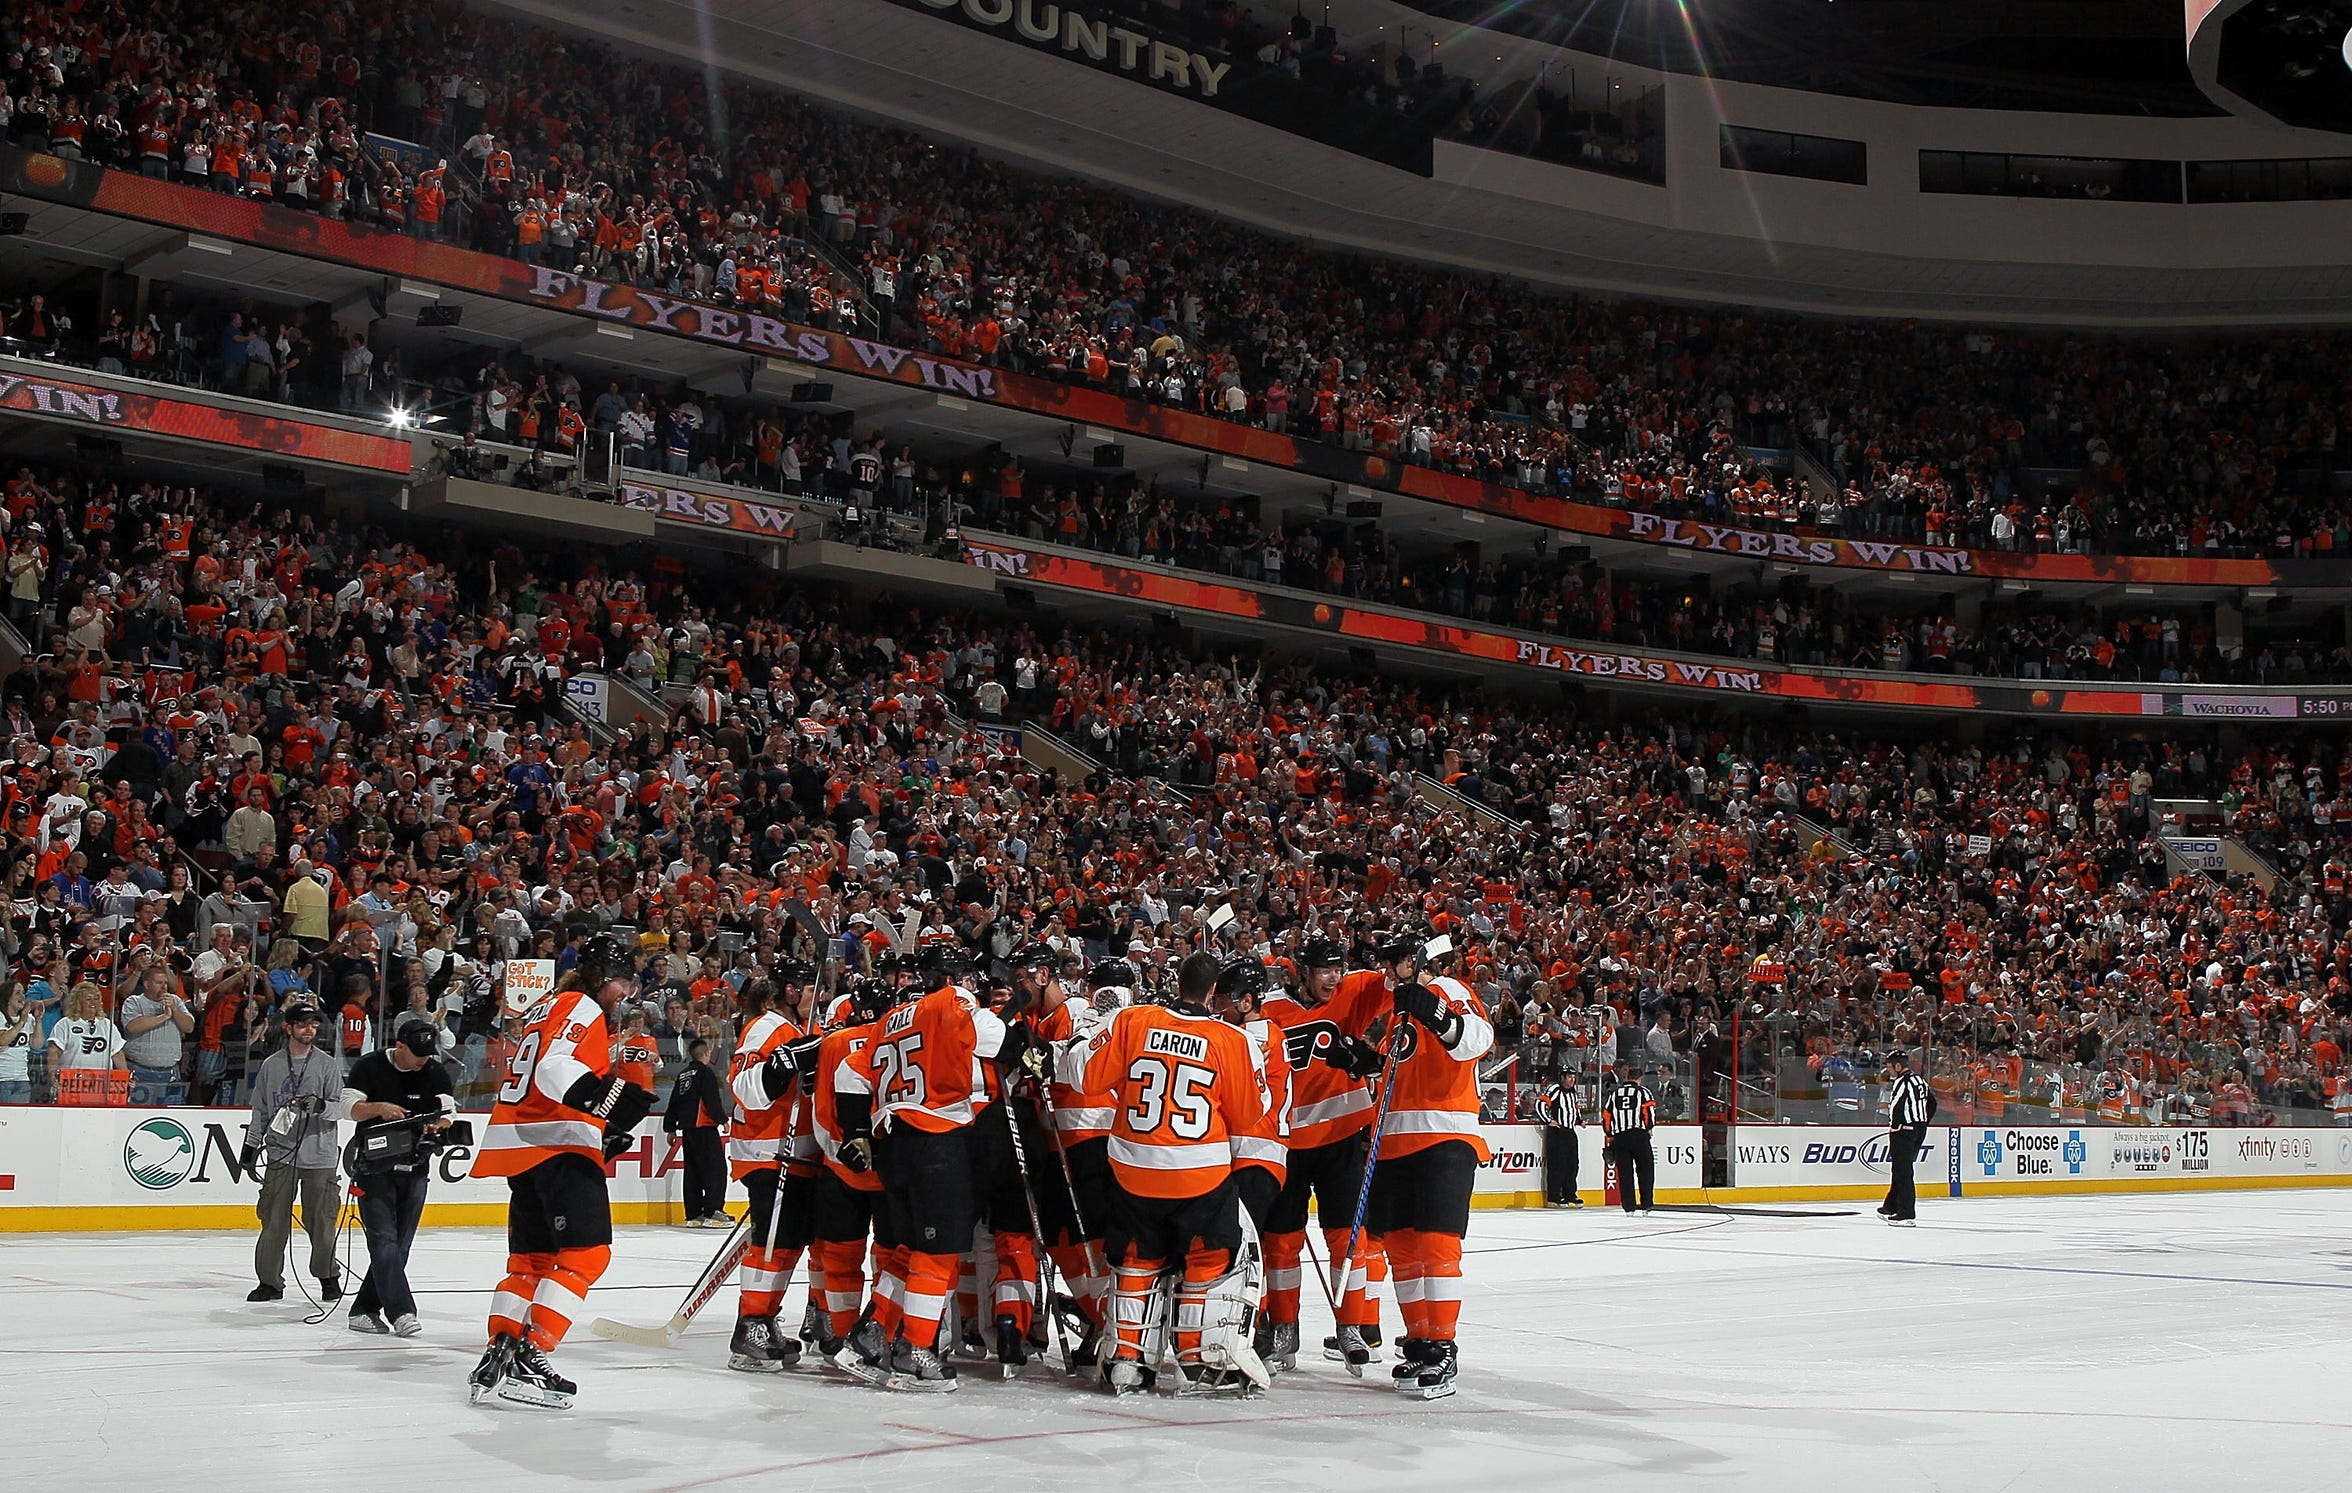 After winning Game 82, the Flyers were 24-14-3 on home ice in the 2009-10 season.